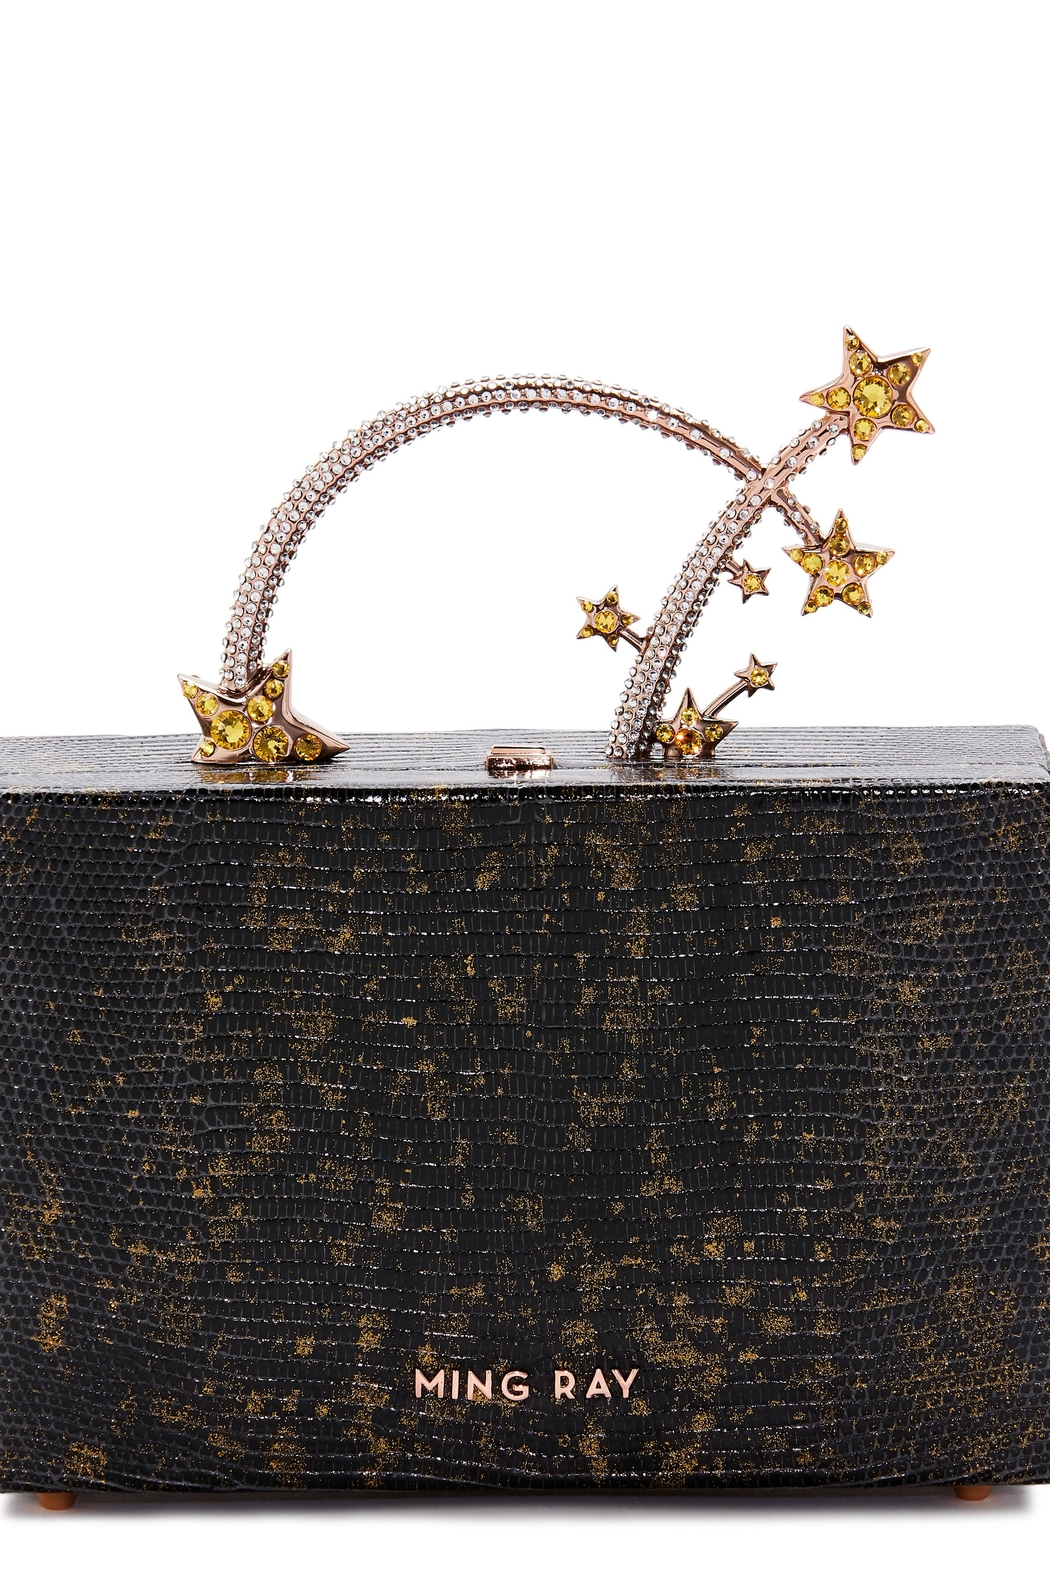 Ming Ray Mingray Lizard Clutch - Side Cropped Image